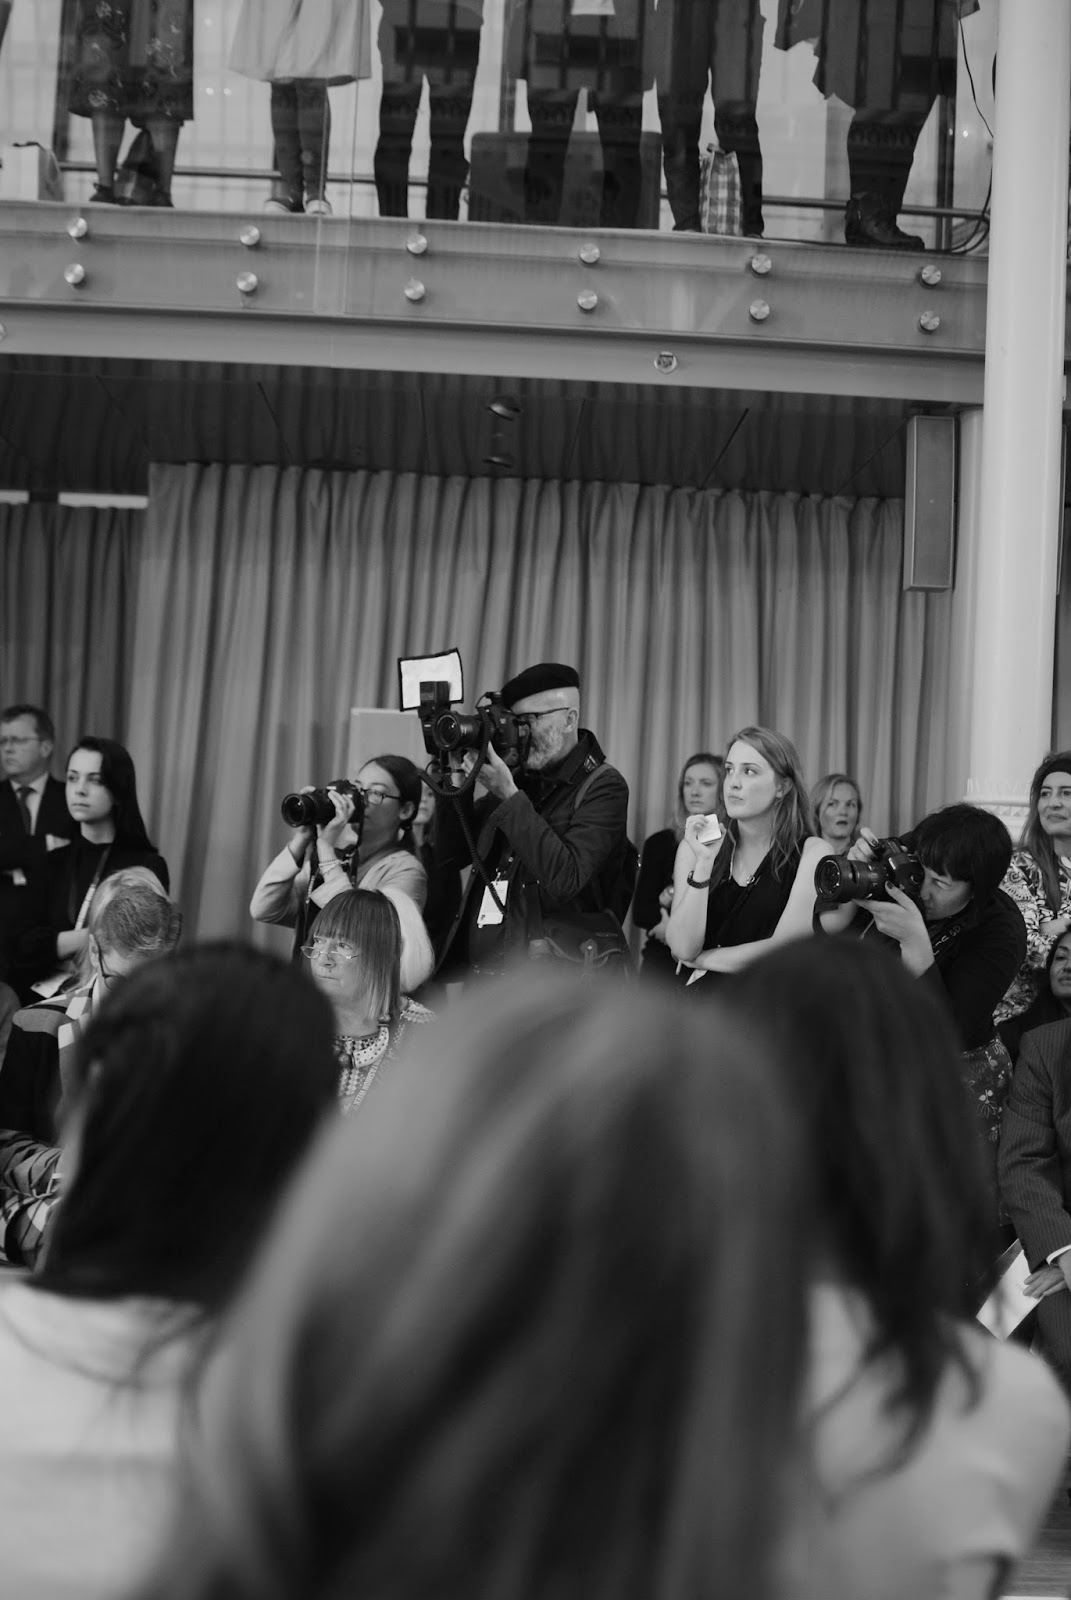 london-fashion-week-2014-lfw-DAKS-show-catwalk-spring-summer-2015-models-clothes-fashion-frow-camera-photographers